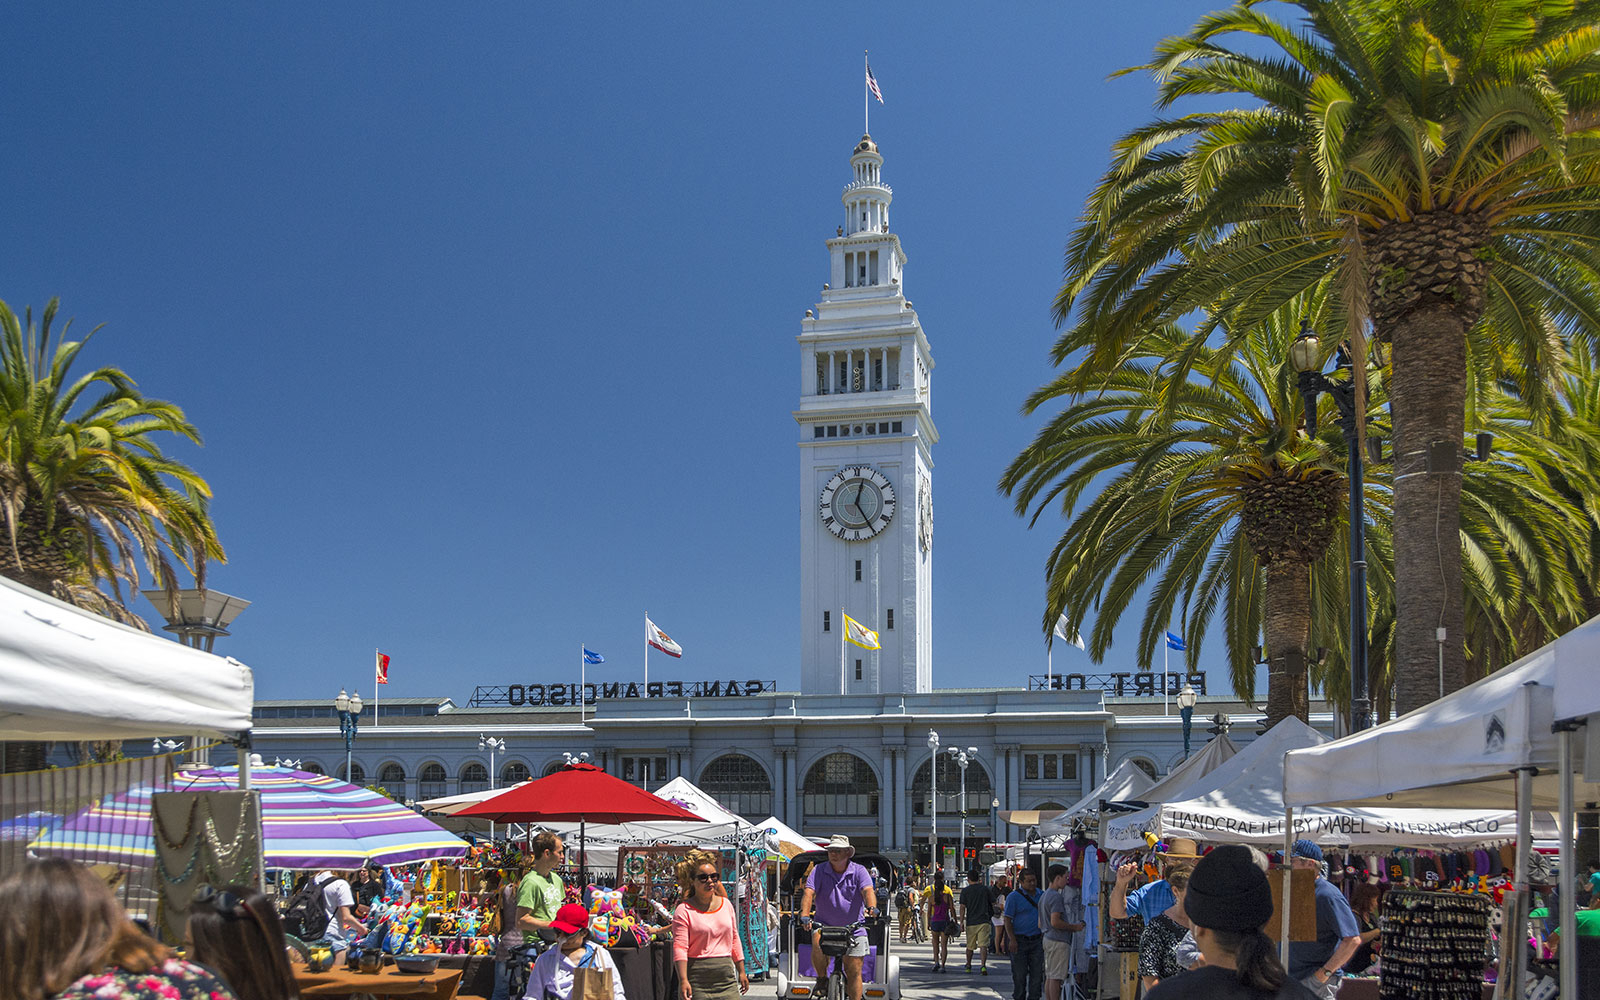 9 a.m.: Breakfast at the Ferry Building Marketplace in San Francisco